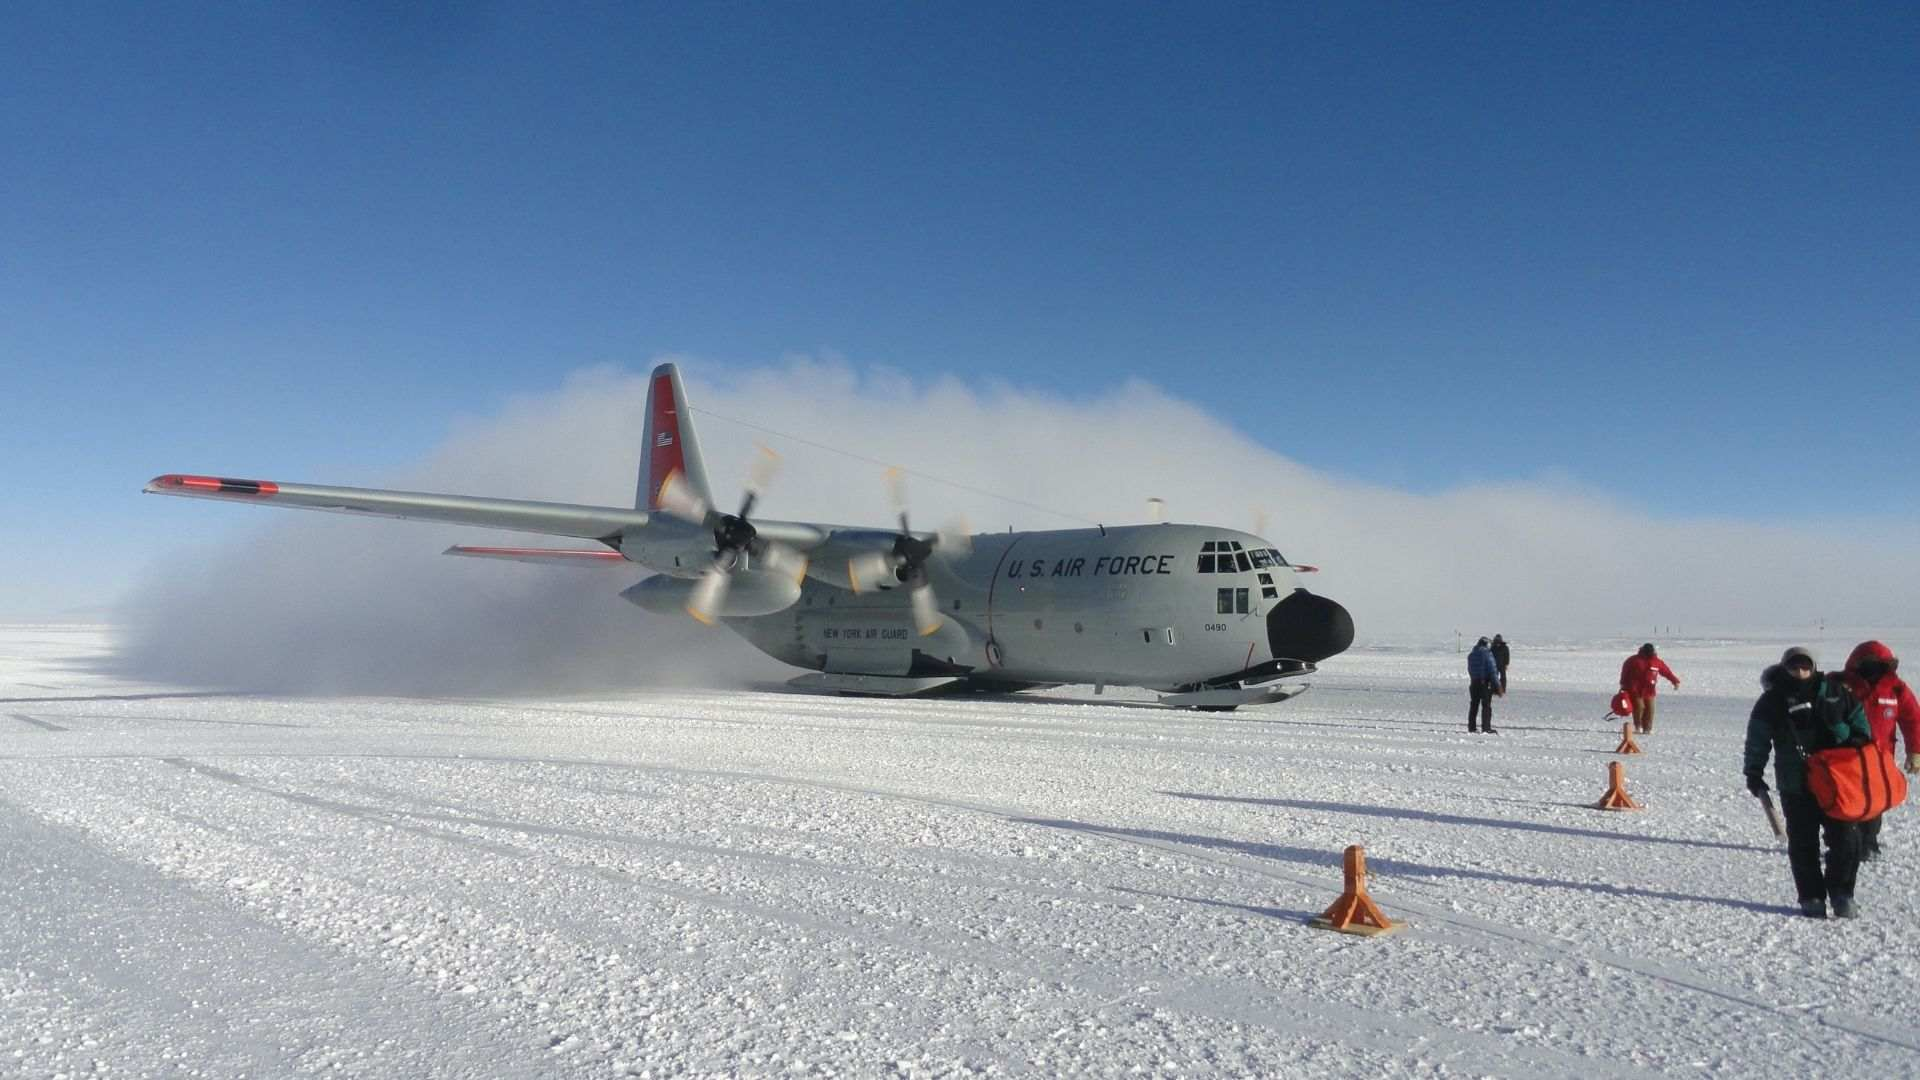 Landing on the South Pole